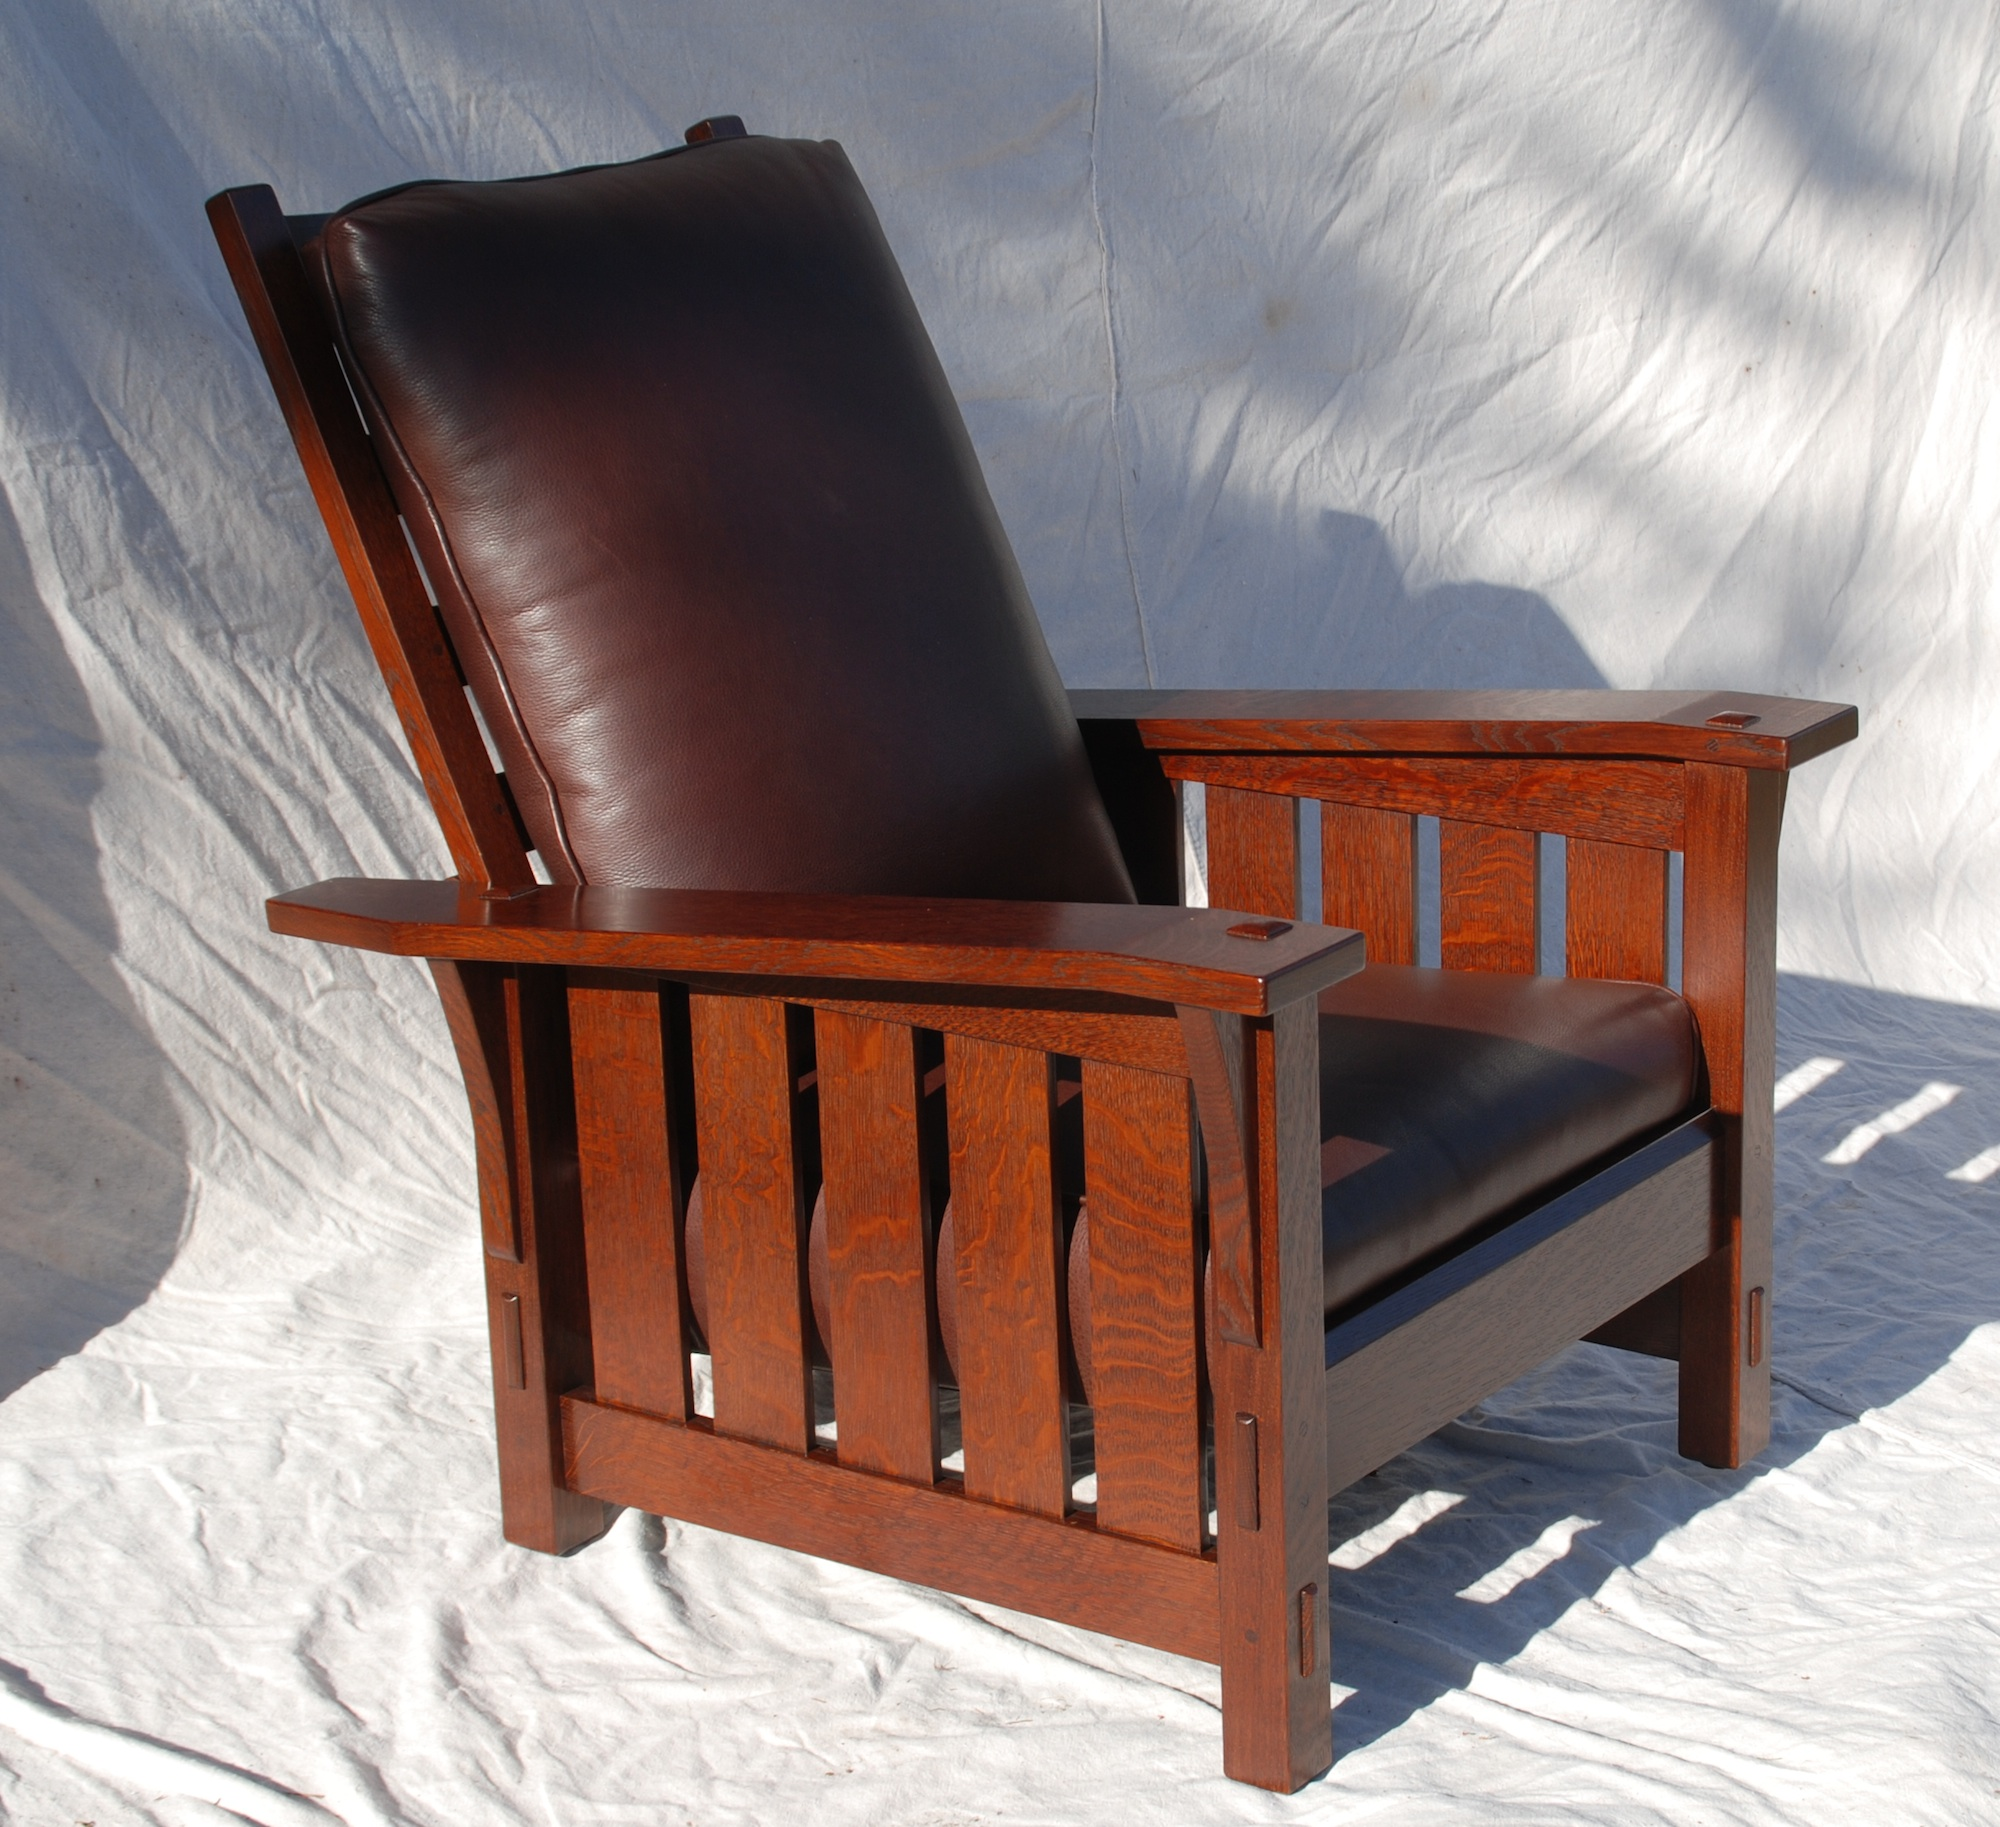 Gustav Stickley inspired Medium Size Slant Arm Reclining Morris Chair & Voorhees Craftsman Mission Oak Furniture - Gustav Stickley ... islam-shia.org